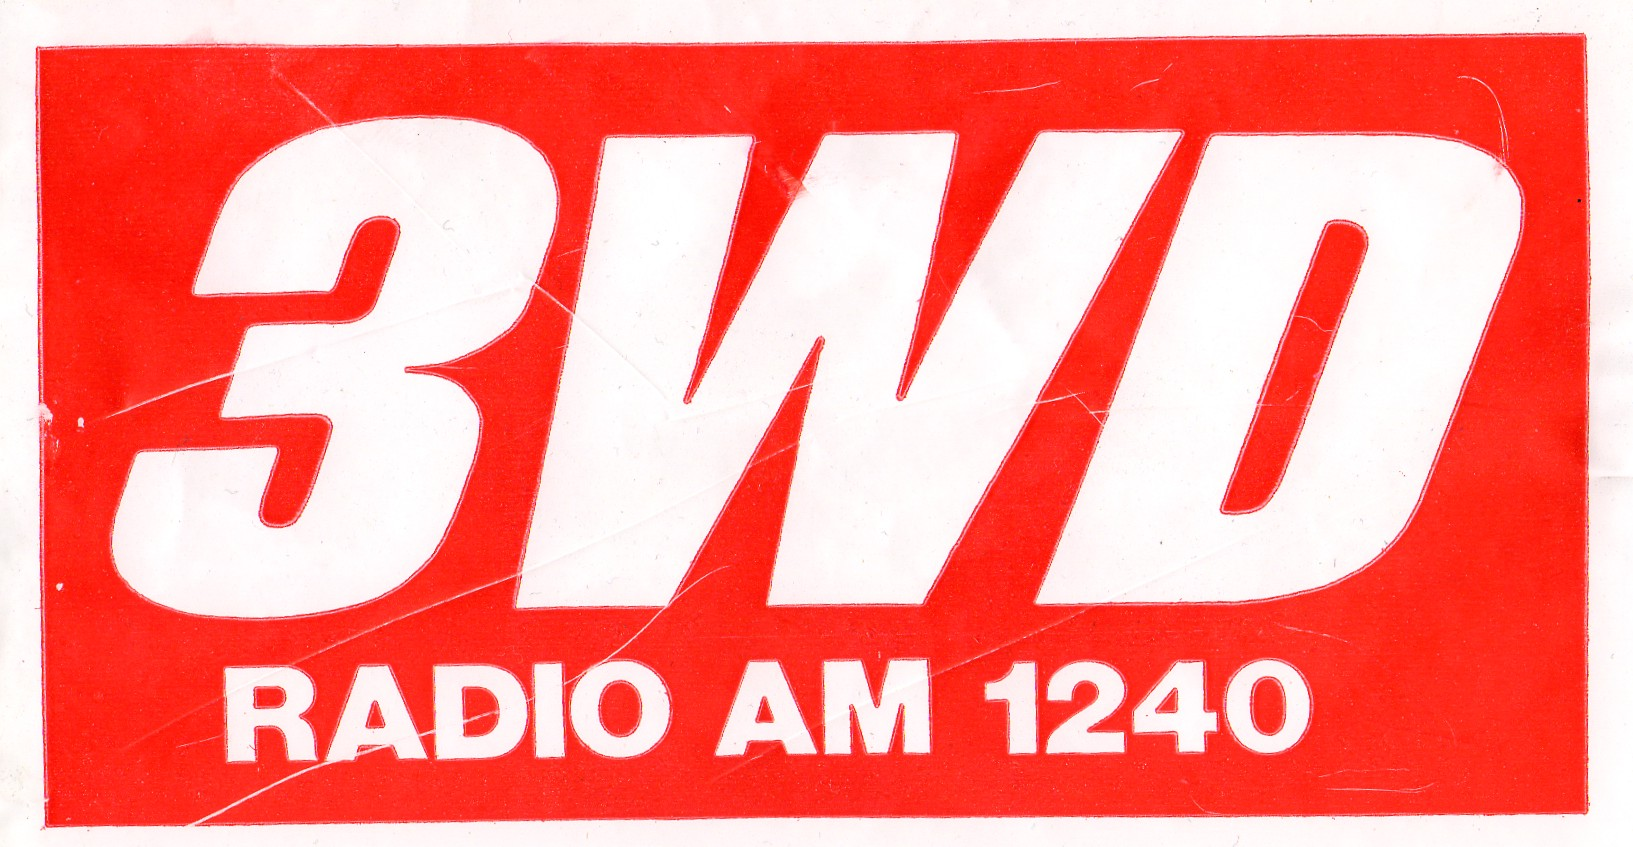 bumper sticker for radio station 3WD